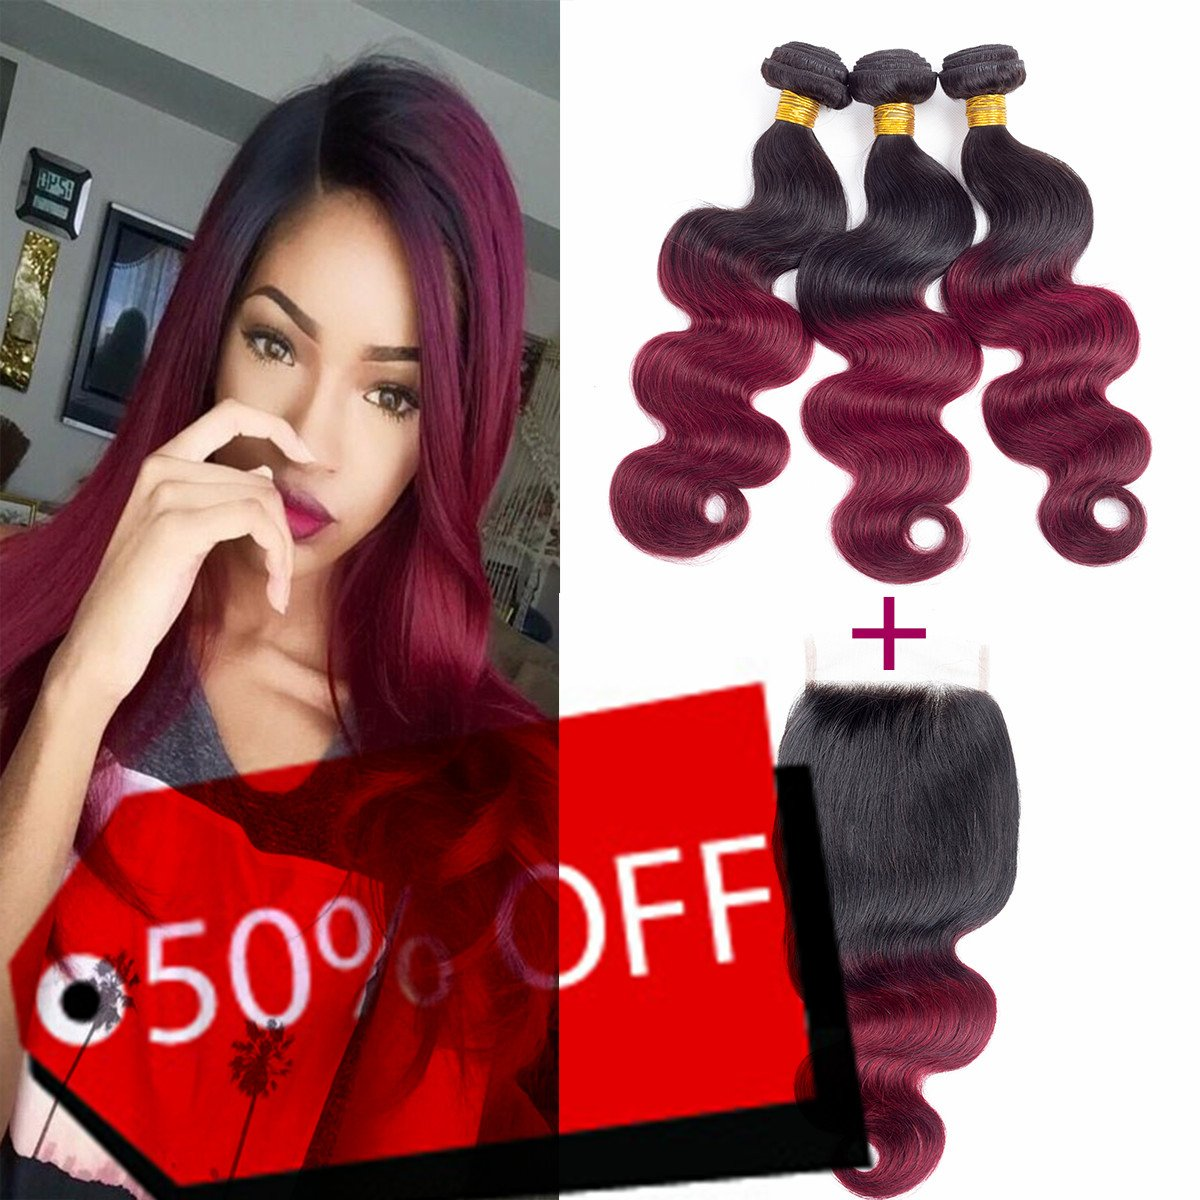 Red Ombre Human Hair Bundles With Closure Extensions, Crimson Hair Ombre Burgundy Bundles. Tangle Free Soft Barely Shedding Bouncy(16 18 20 +14)